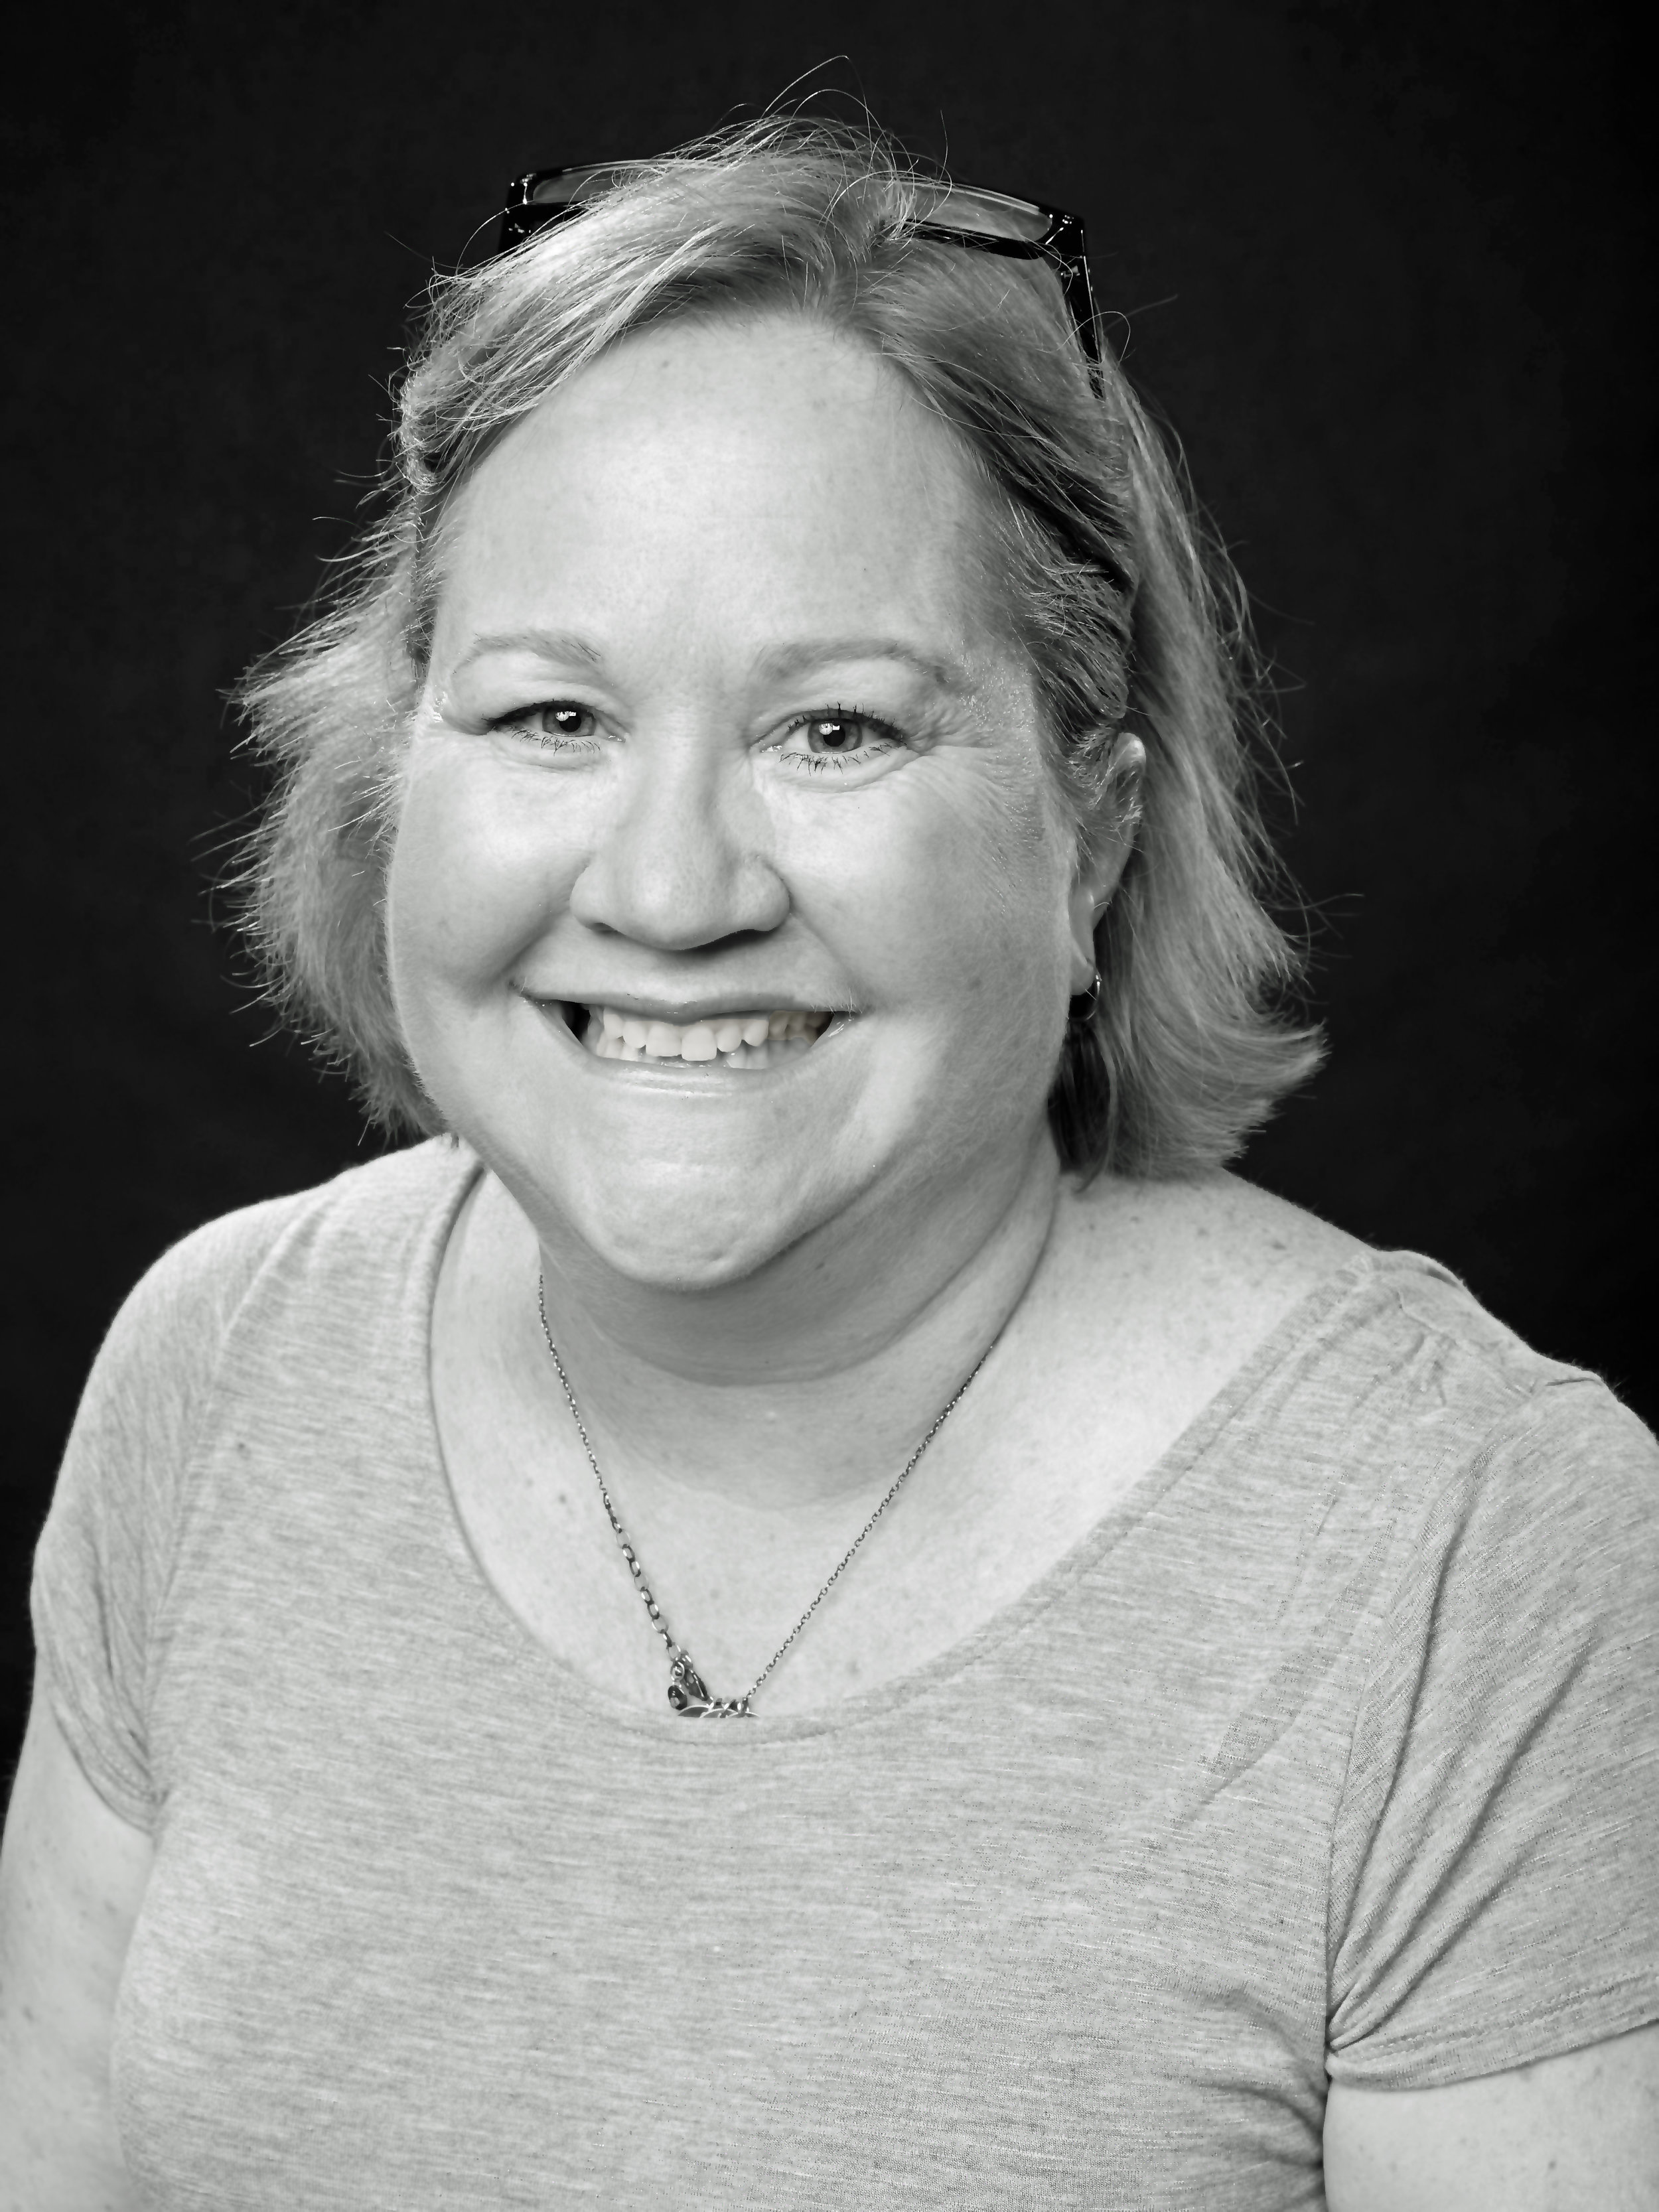 Betsy Helgesen is UMD's new Director of Dining Services. Photo courtesy of Betsy Helgesen.